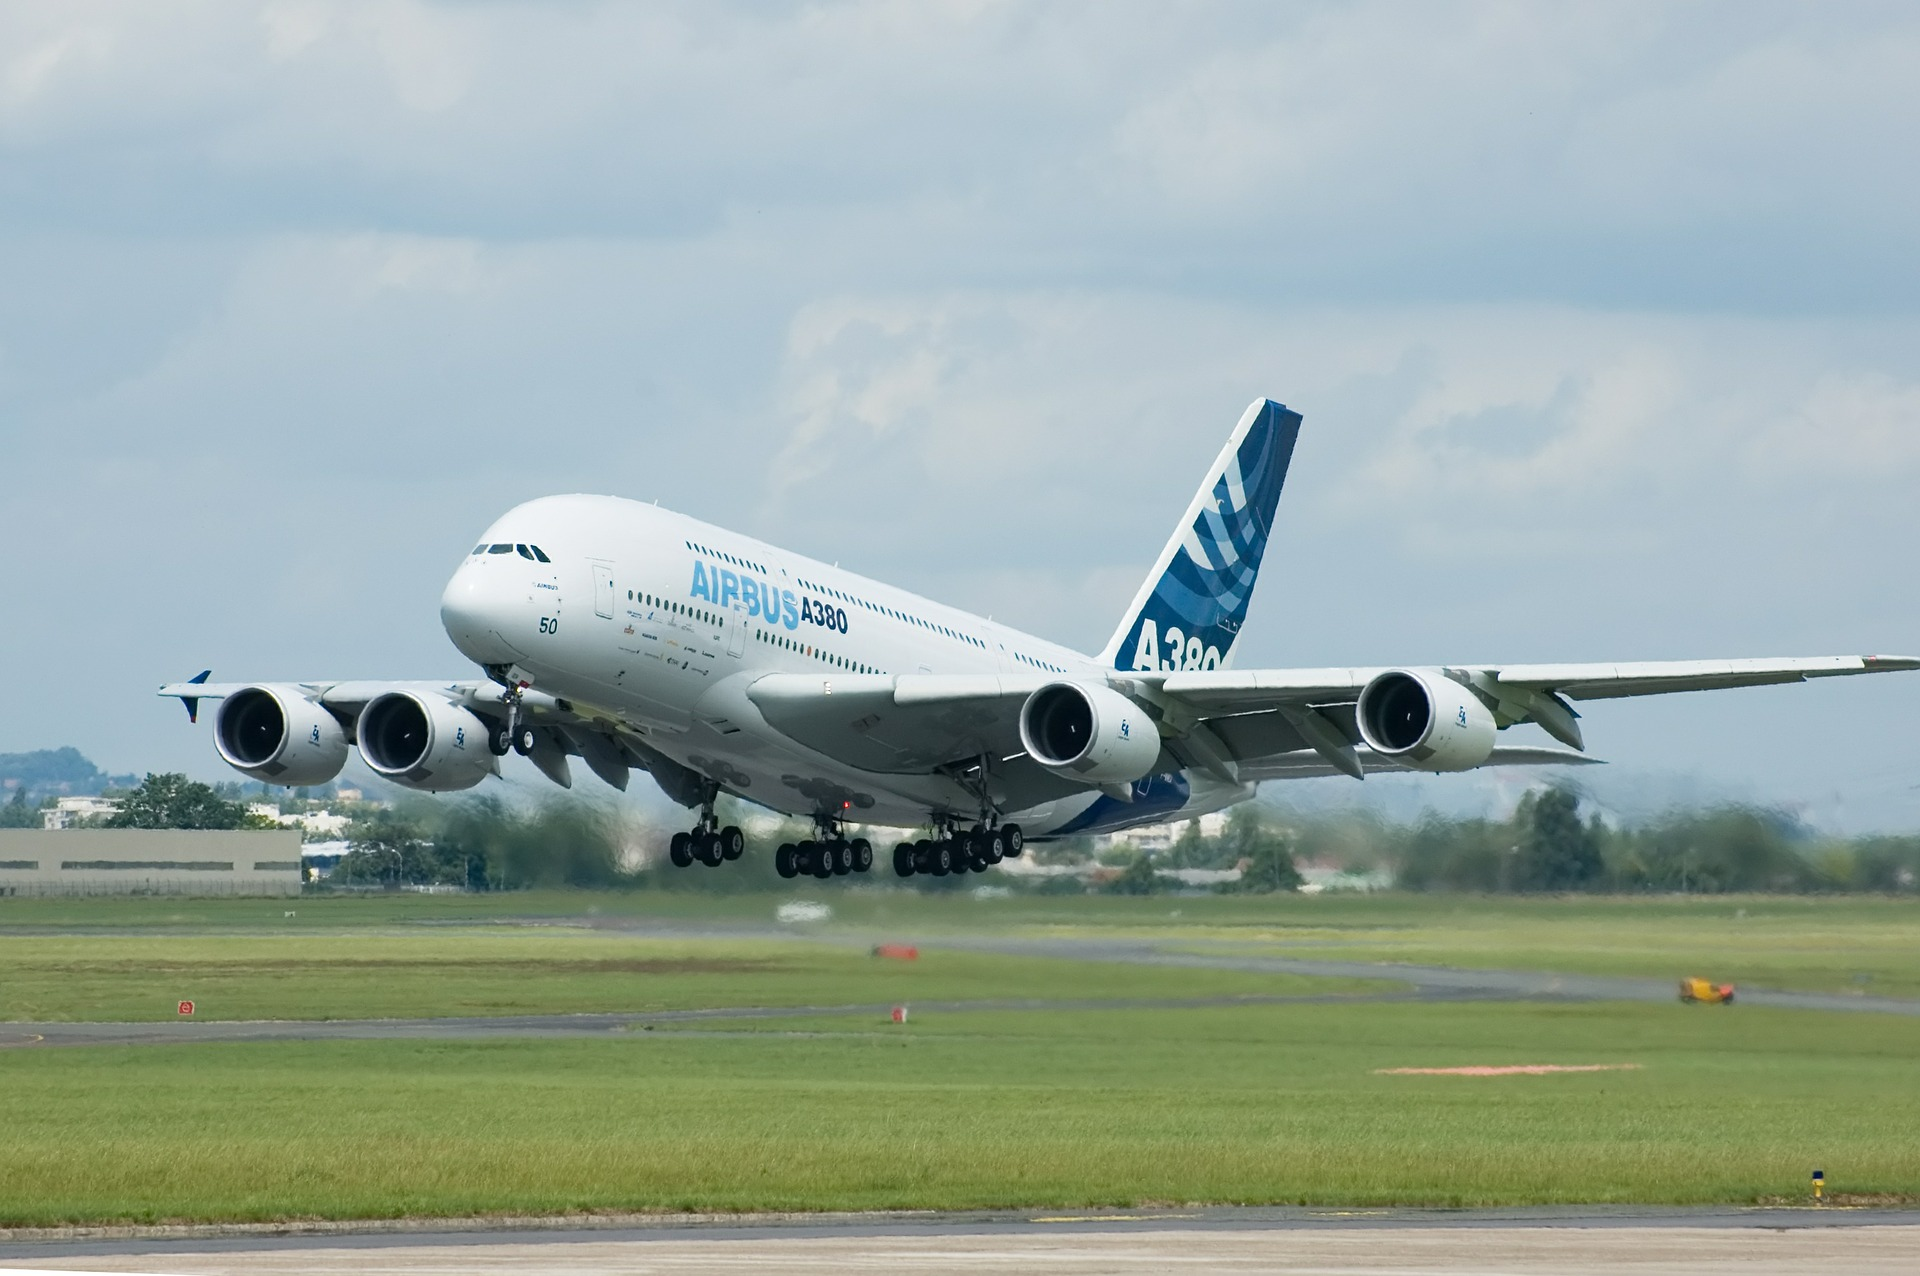 Discover why has Airbus decided to stop producing more A380